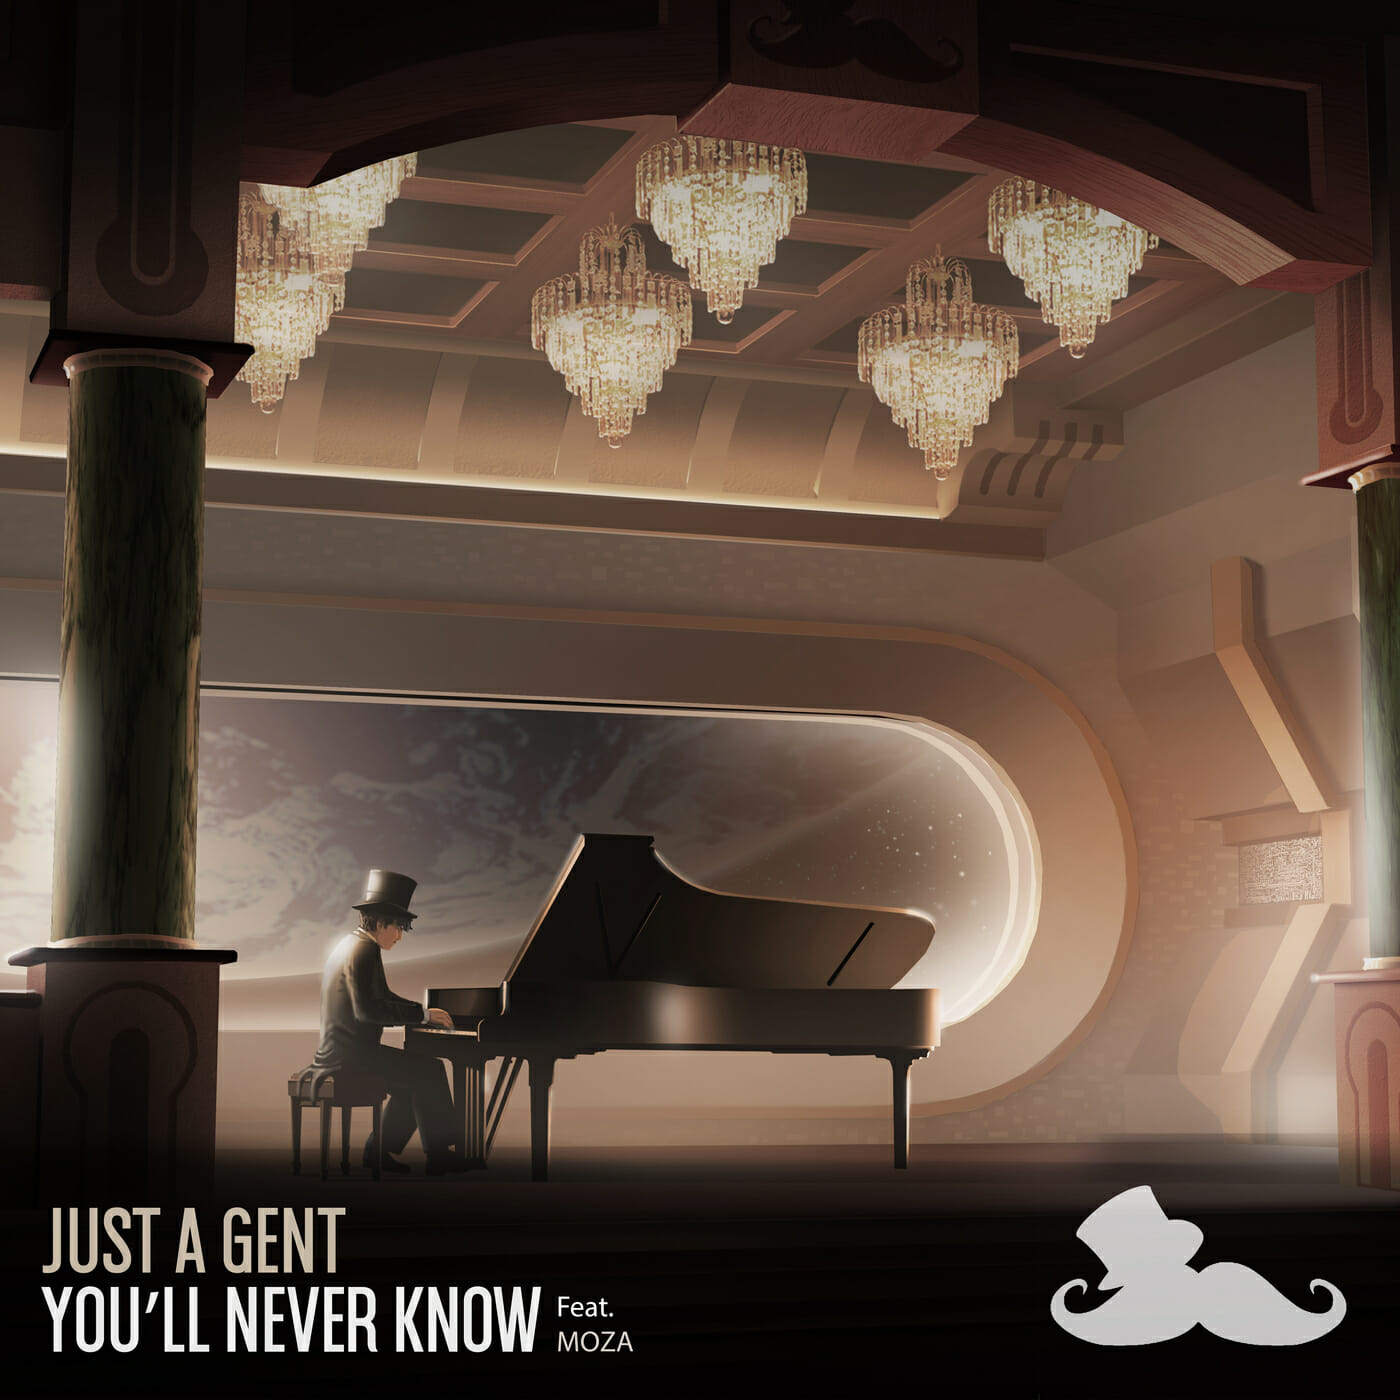 Just A Gent – You'll Never Know (feat. Moza)Artworks ZcMsNUmyg57W 0 Original